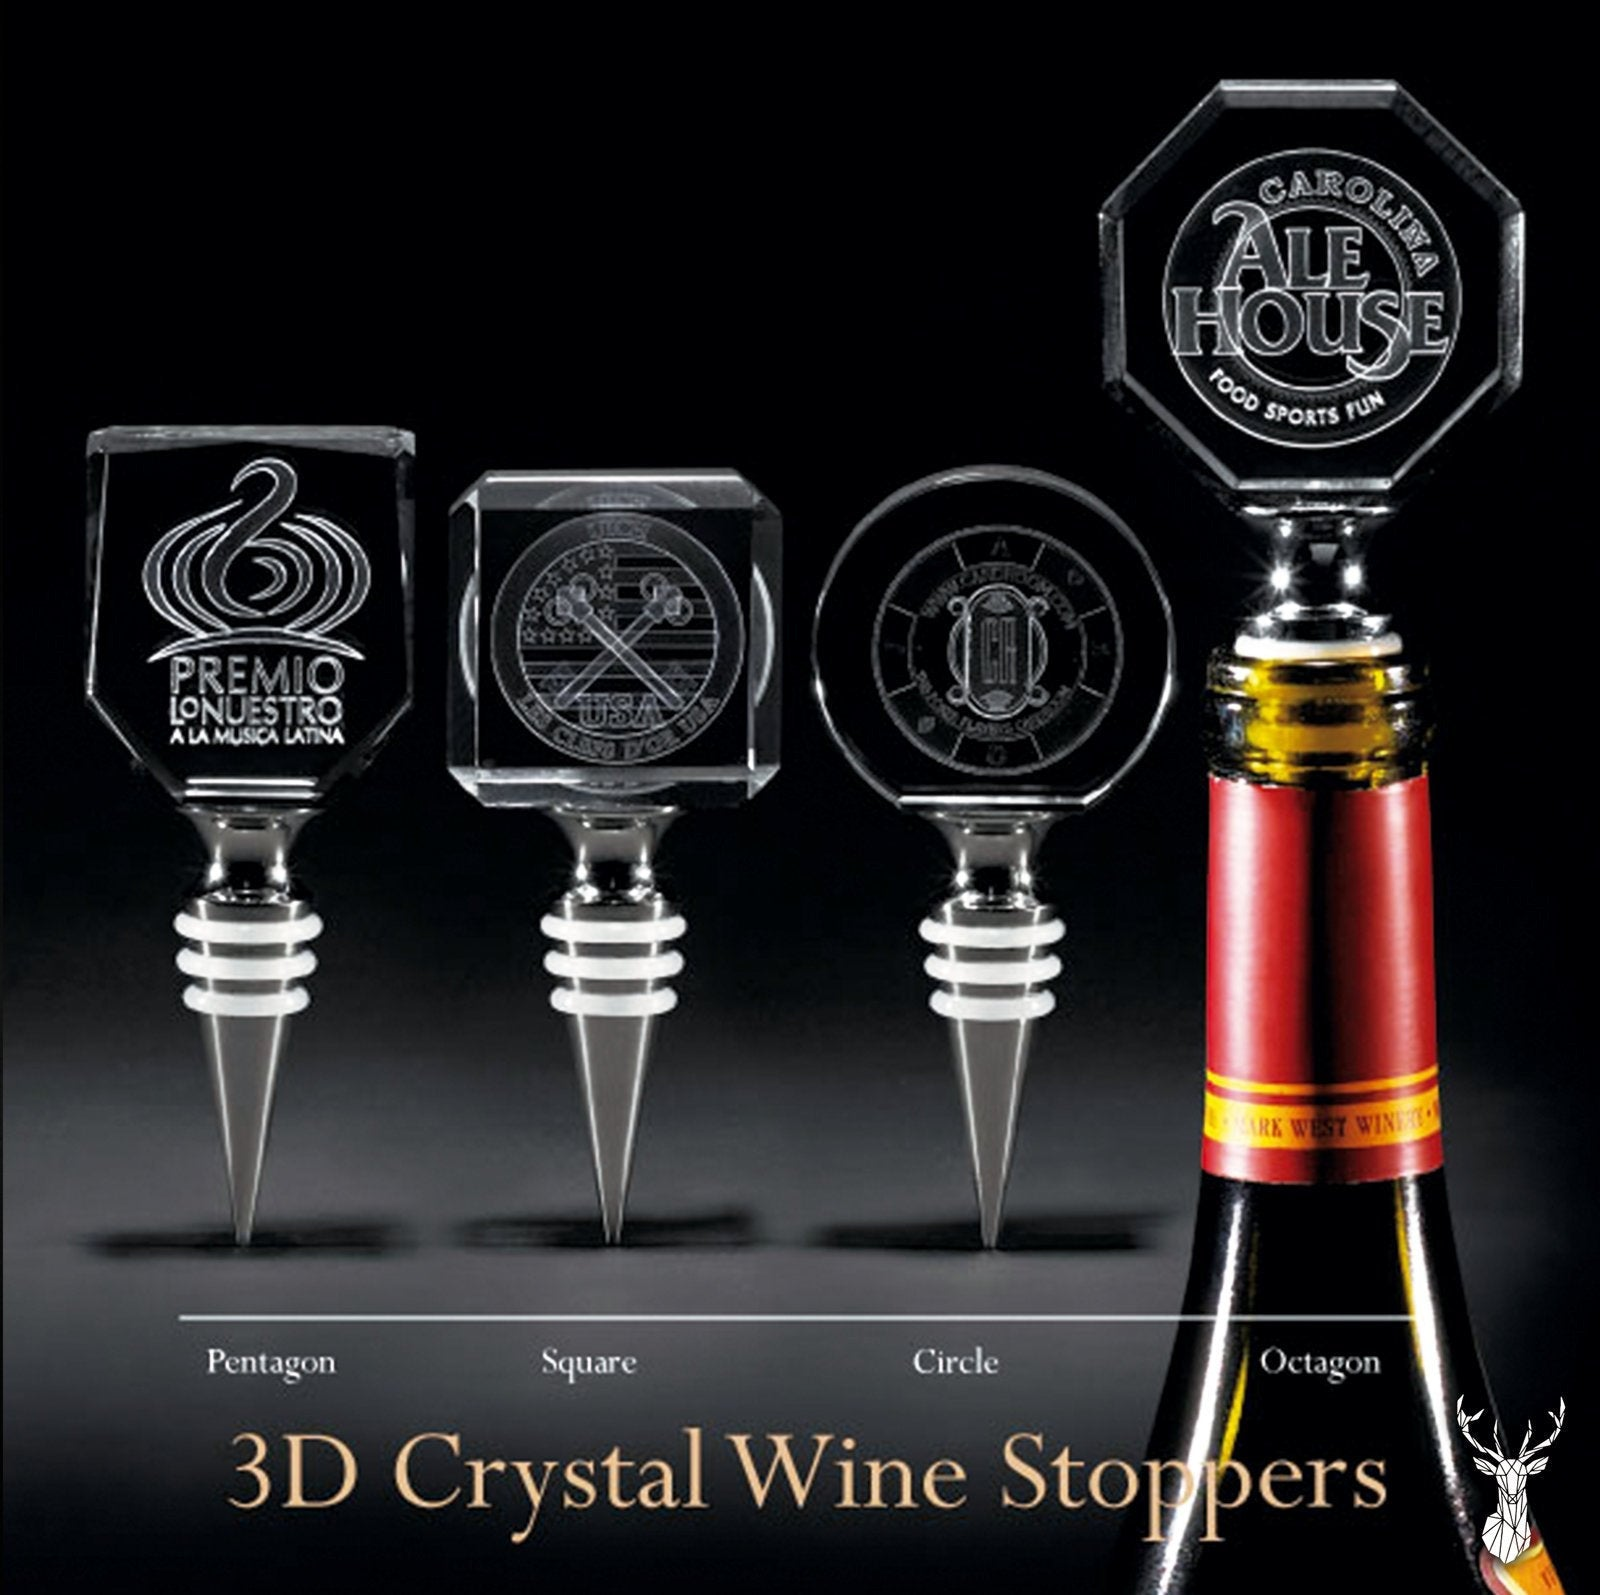 3D Square Crystal Wine stopper | Personalized Engraving.